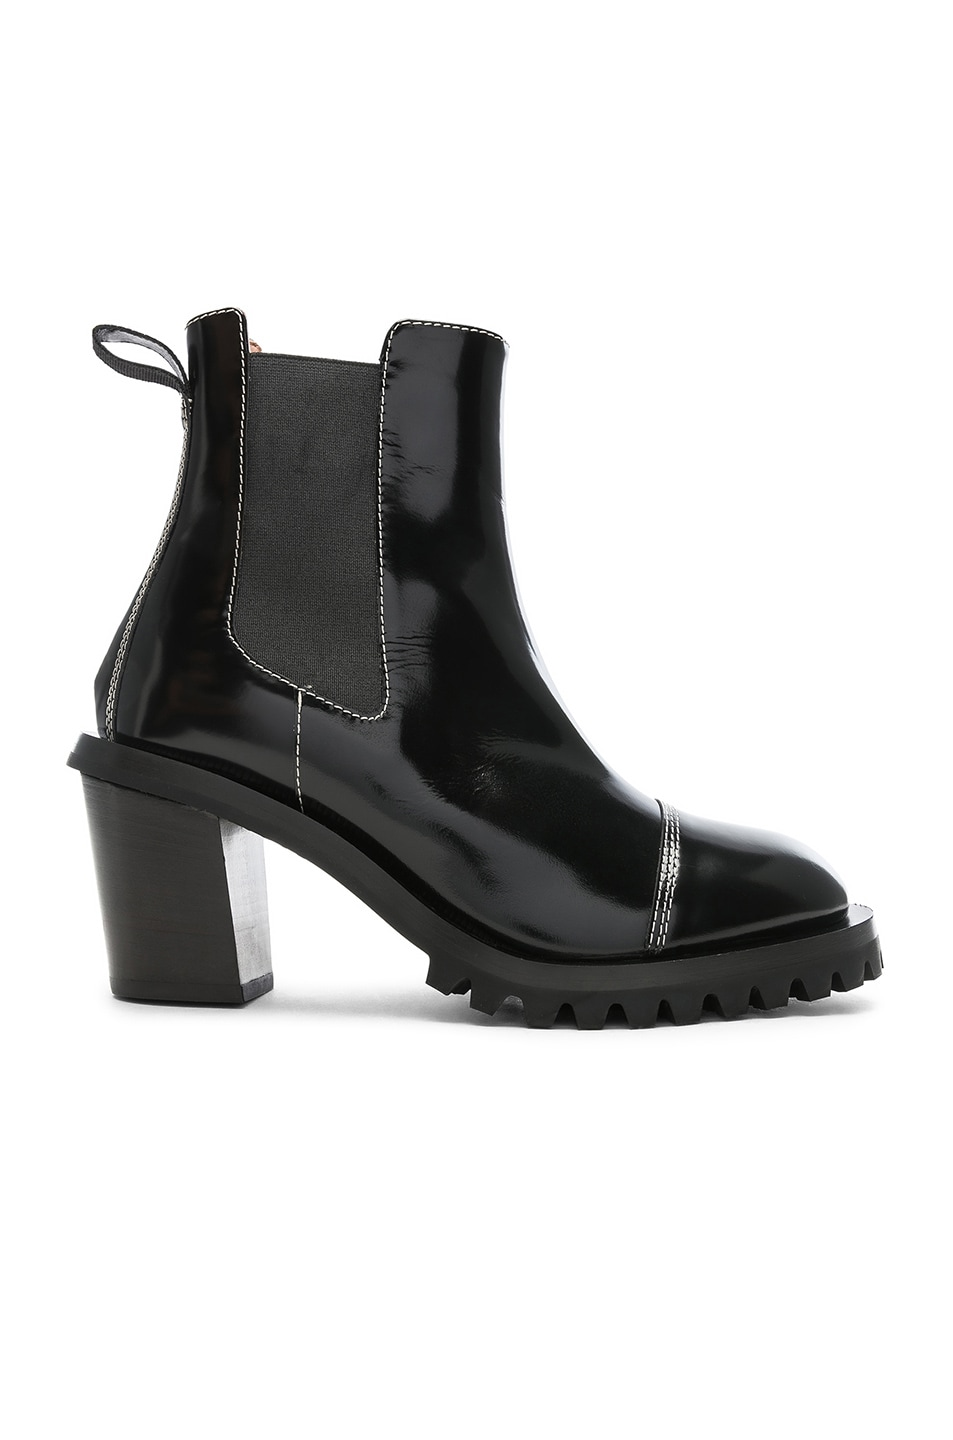 Image 1 of Acne Studios Leather Heeled Boots in Black